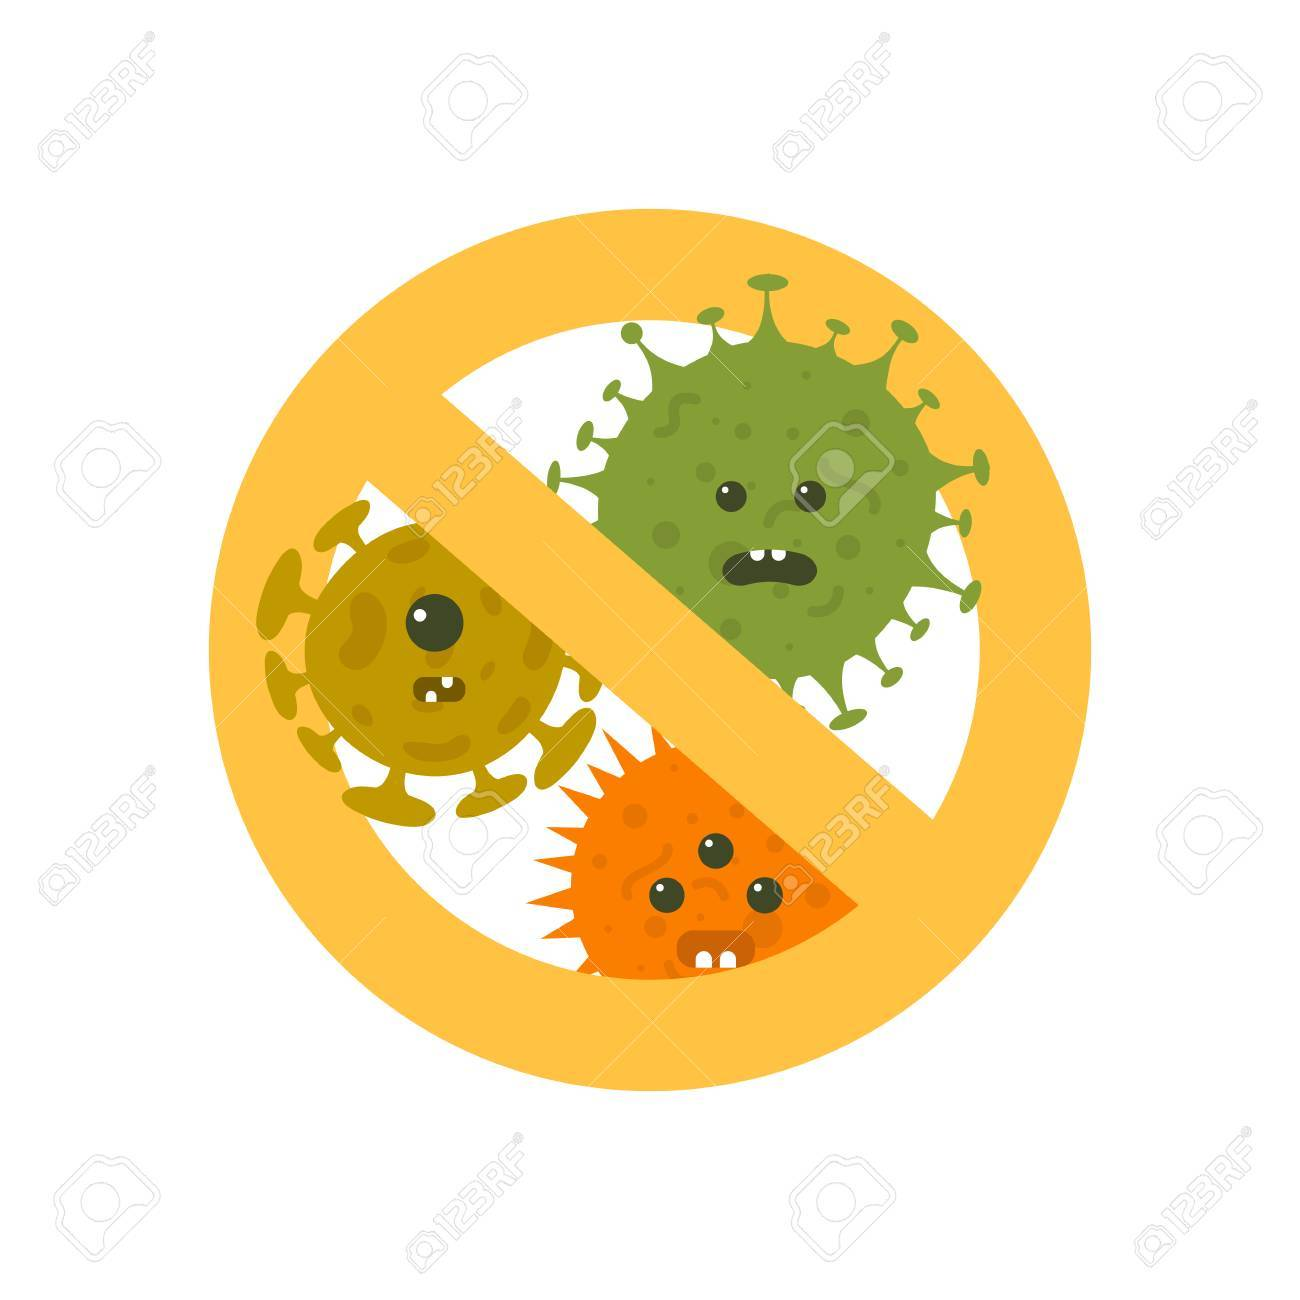 Stop microbes cartoon vector illustration. Anti bacteria symbol and protection infection - 87466985